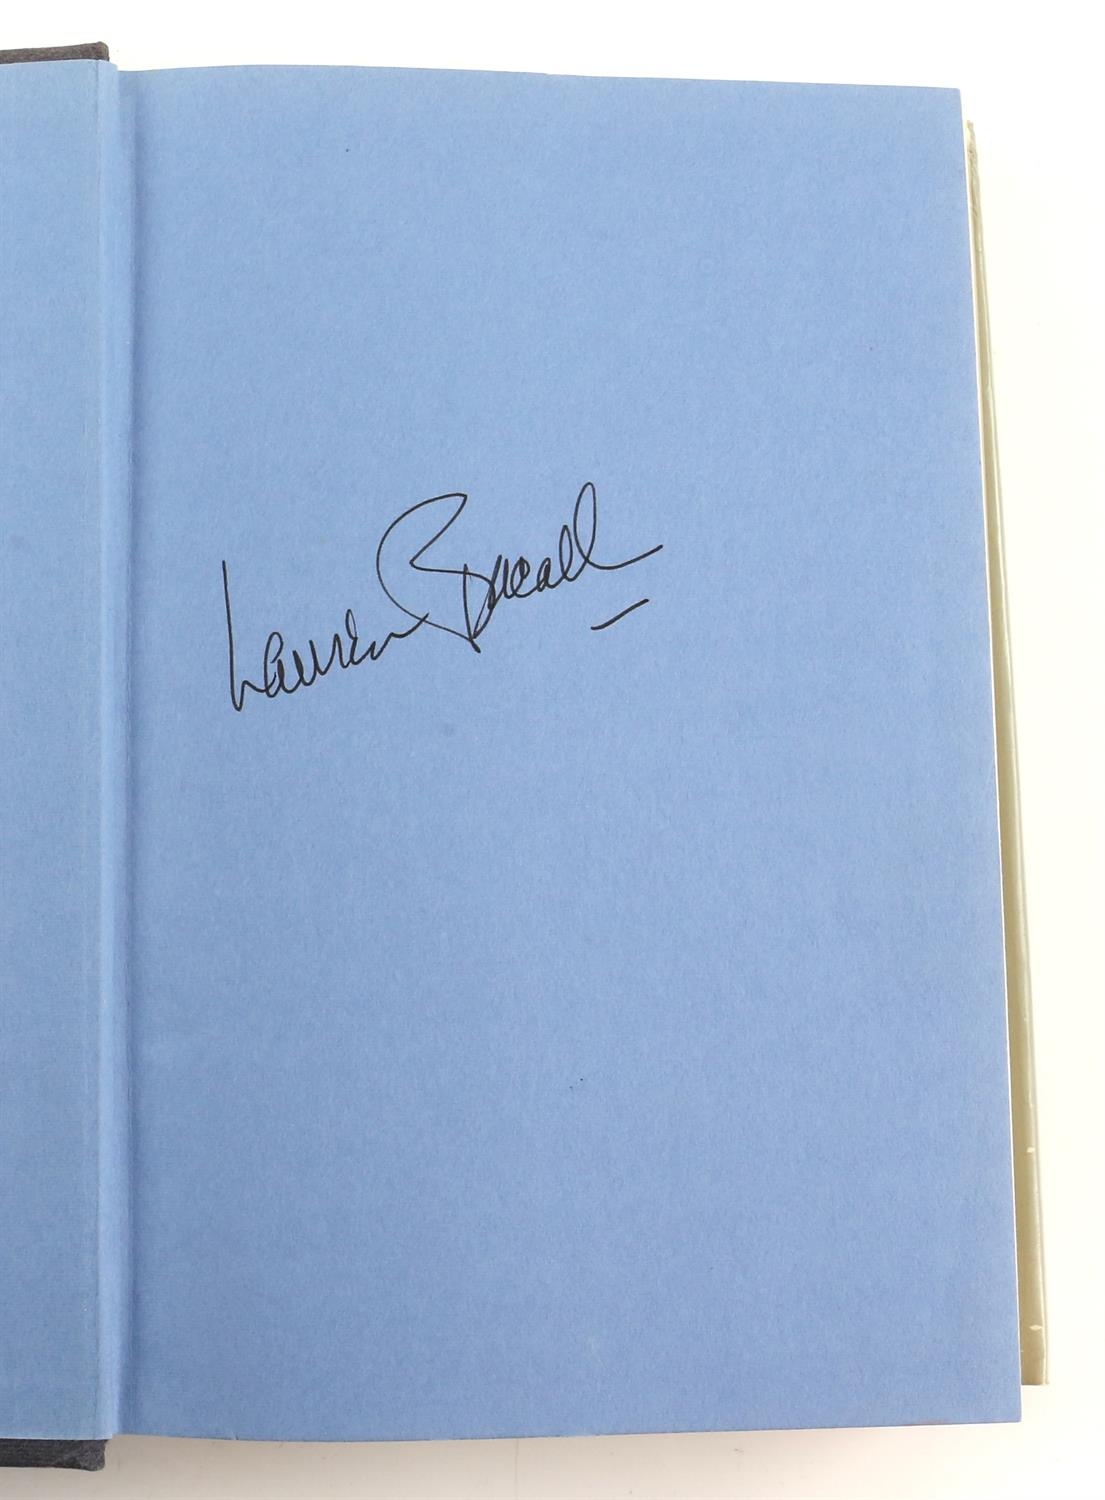 9 autographed books signed by Lauren Bacall, Richard Todd, Michael Palin, Leslie Caron, - Image 3 of 10